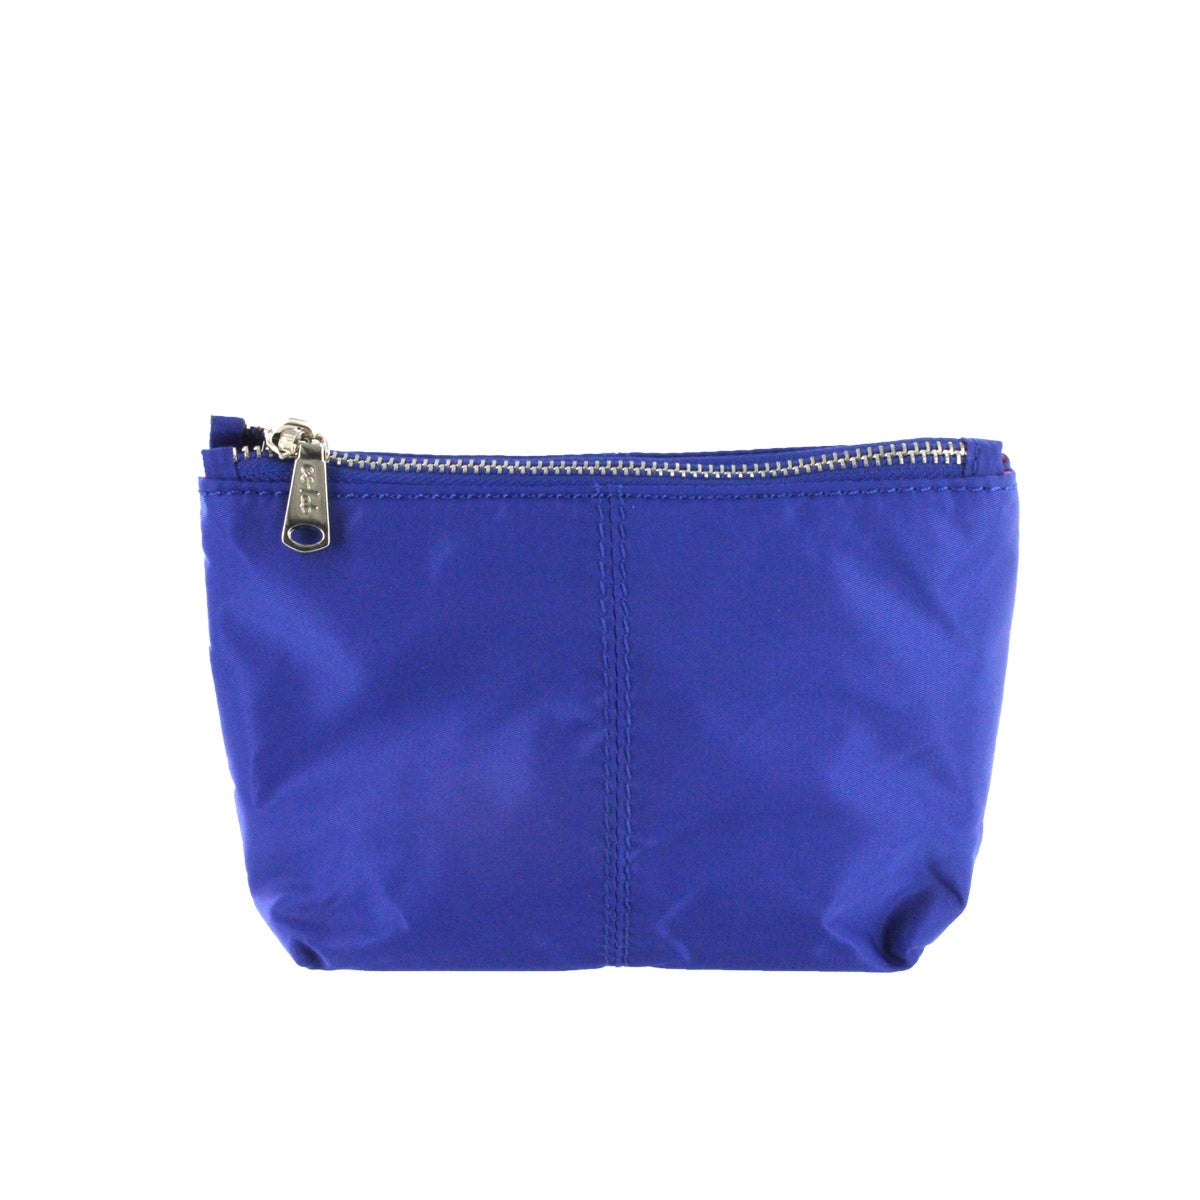 Lds Cosmetics & Such cobalt cosmetic bag